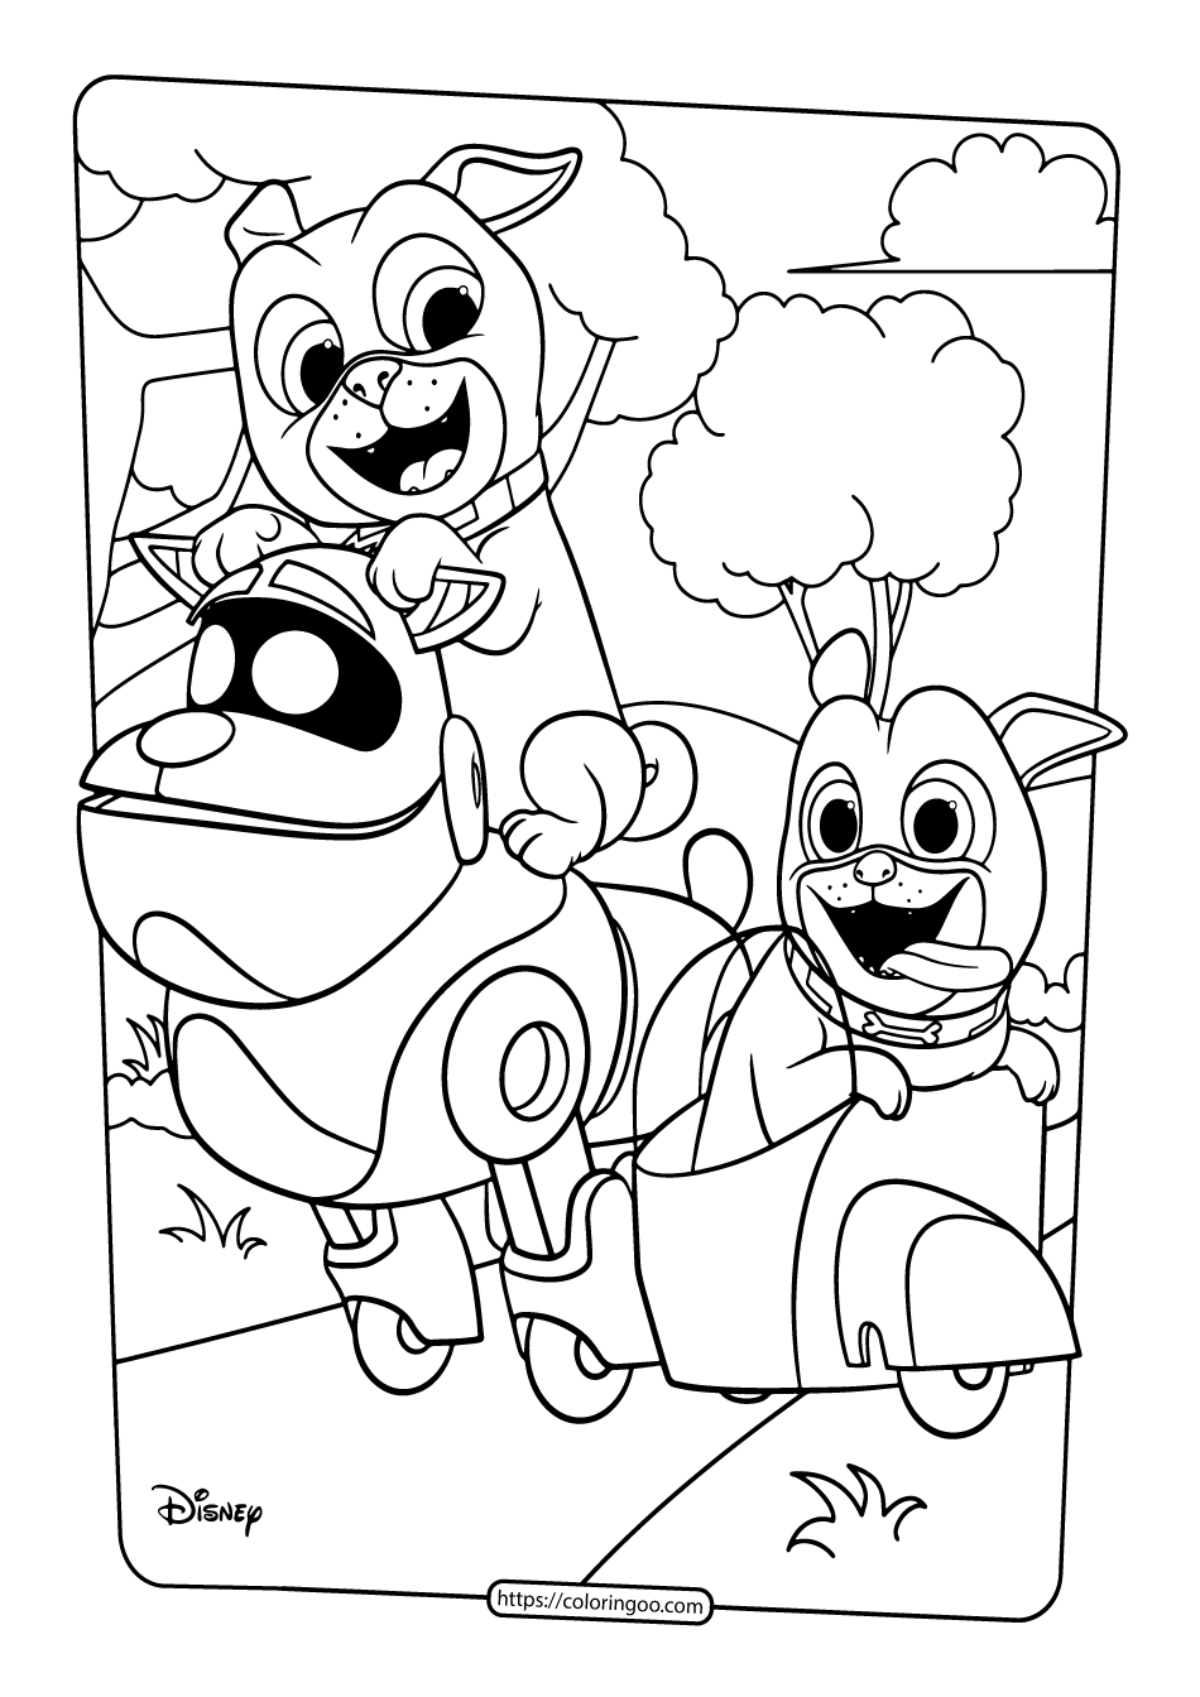 Puppy Dog Pals Coloring Pages Bingo | Malvorlagen, Disney junior ... | 1697x1200